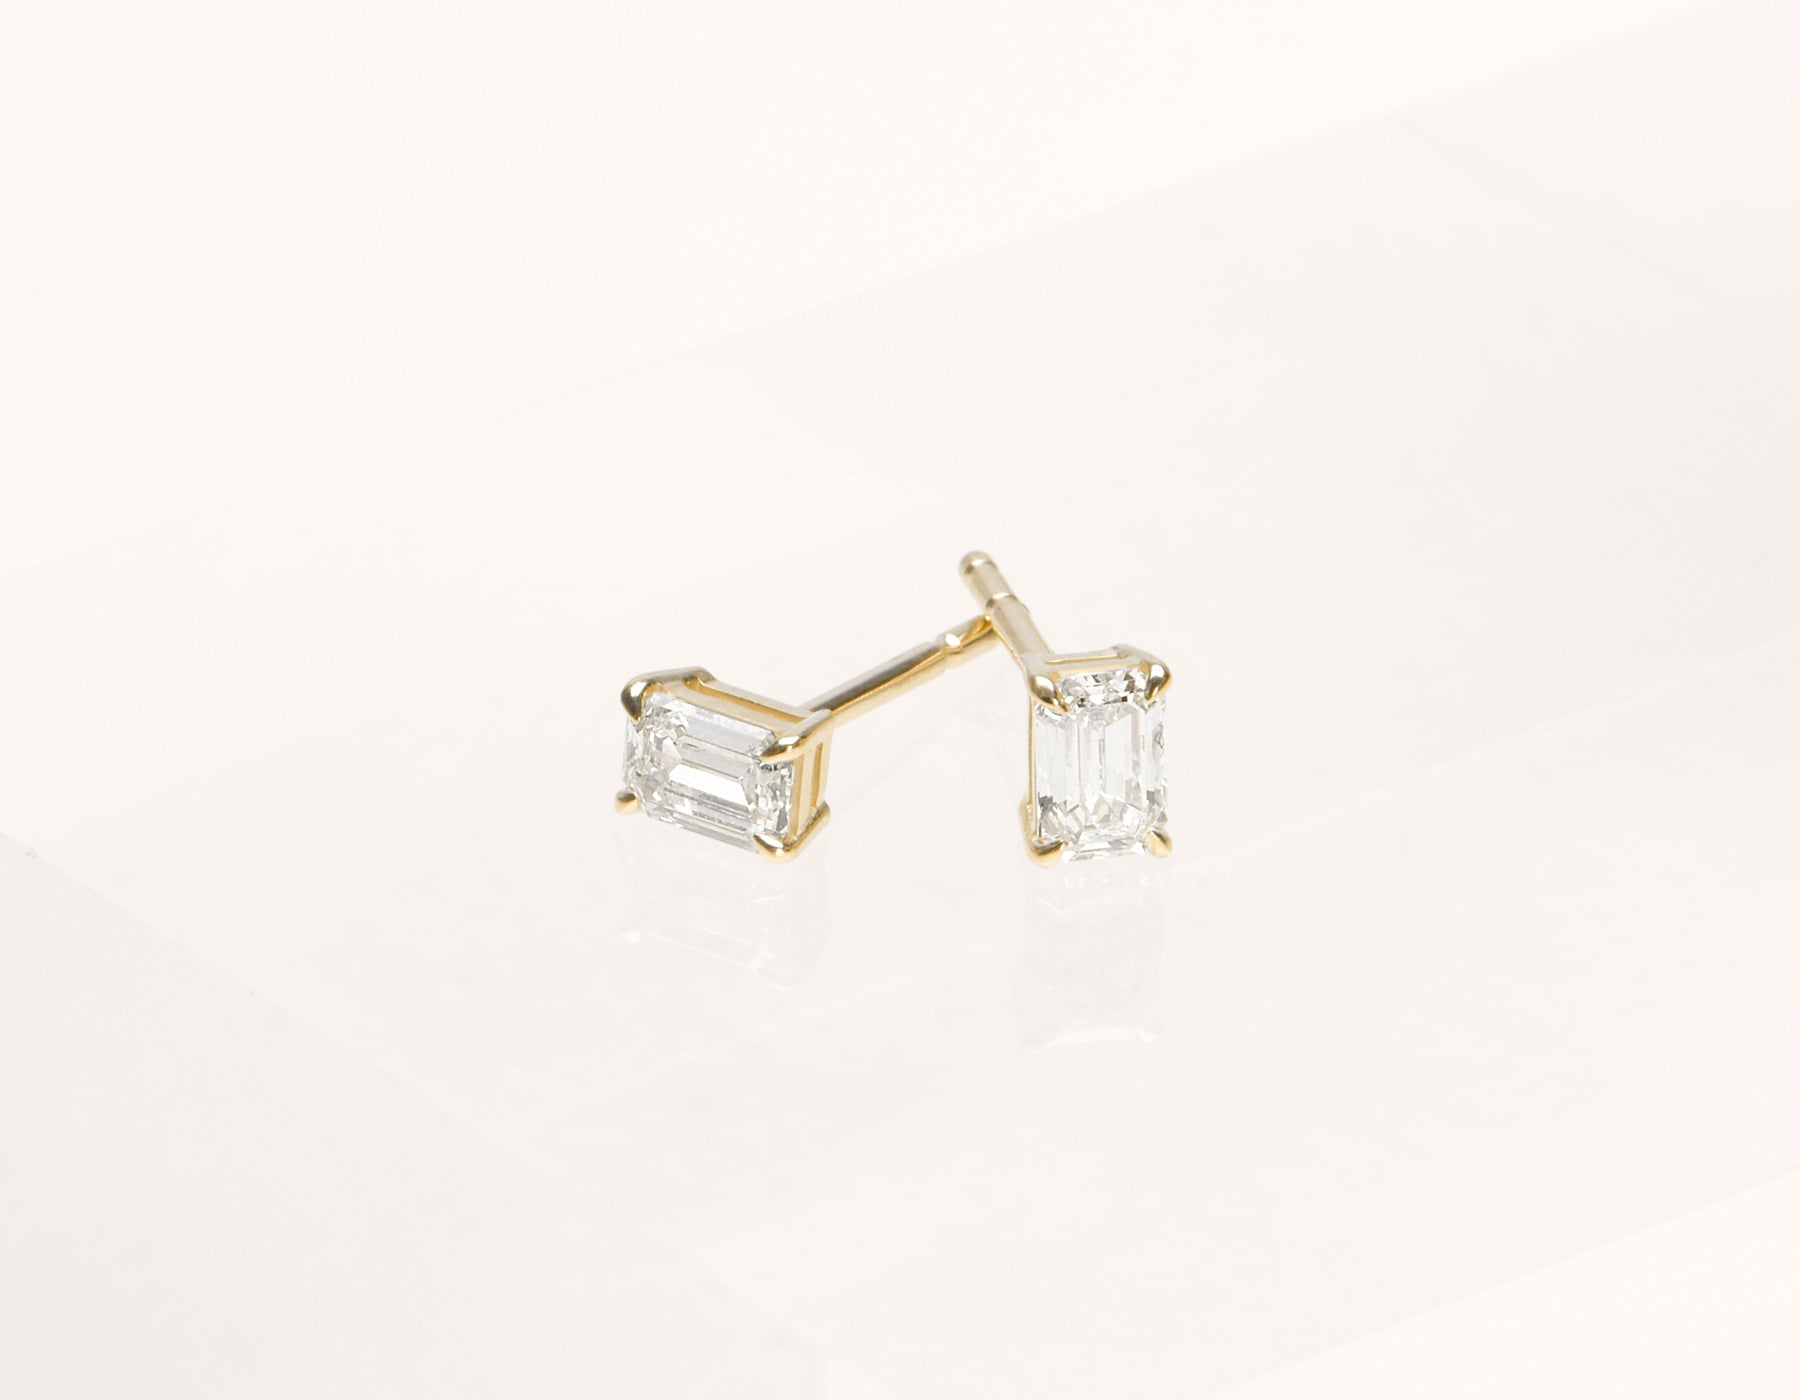 Vrai and oro 1.0 ct Emerald Diamond earrings 18k Solid gold classic minimalist, 18K Yellow Gold